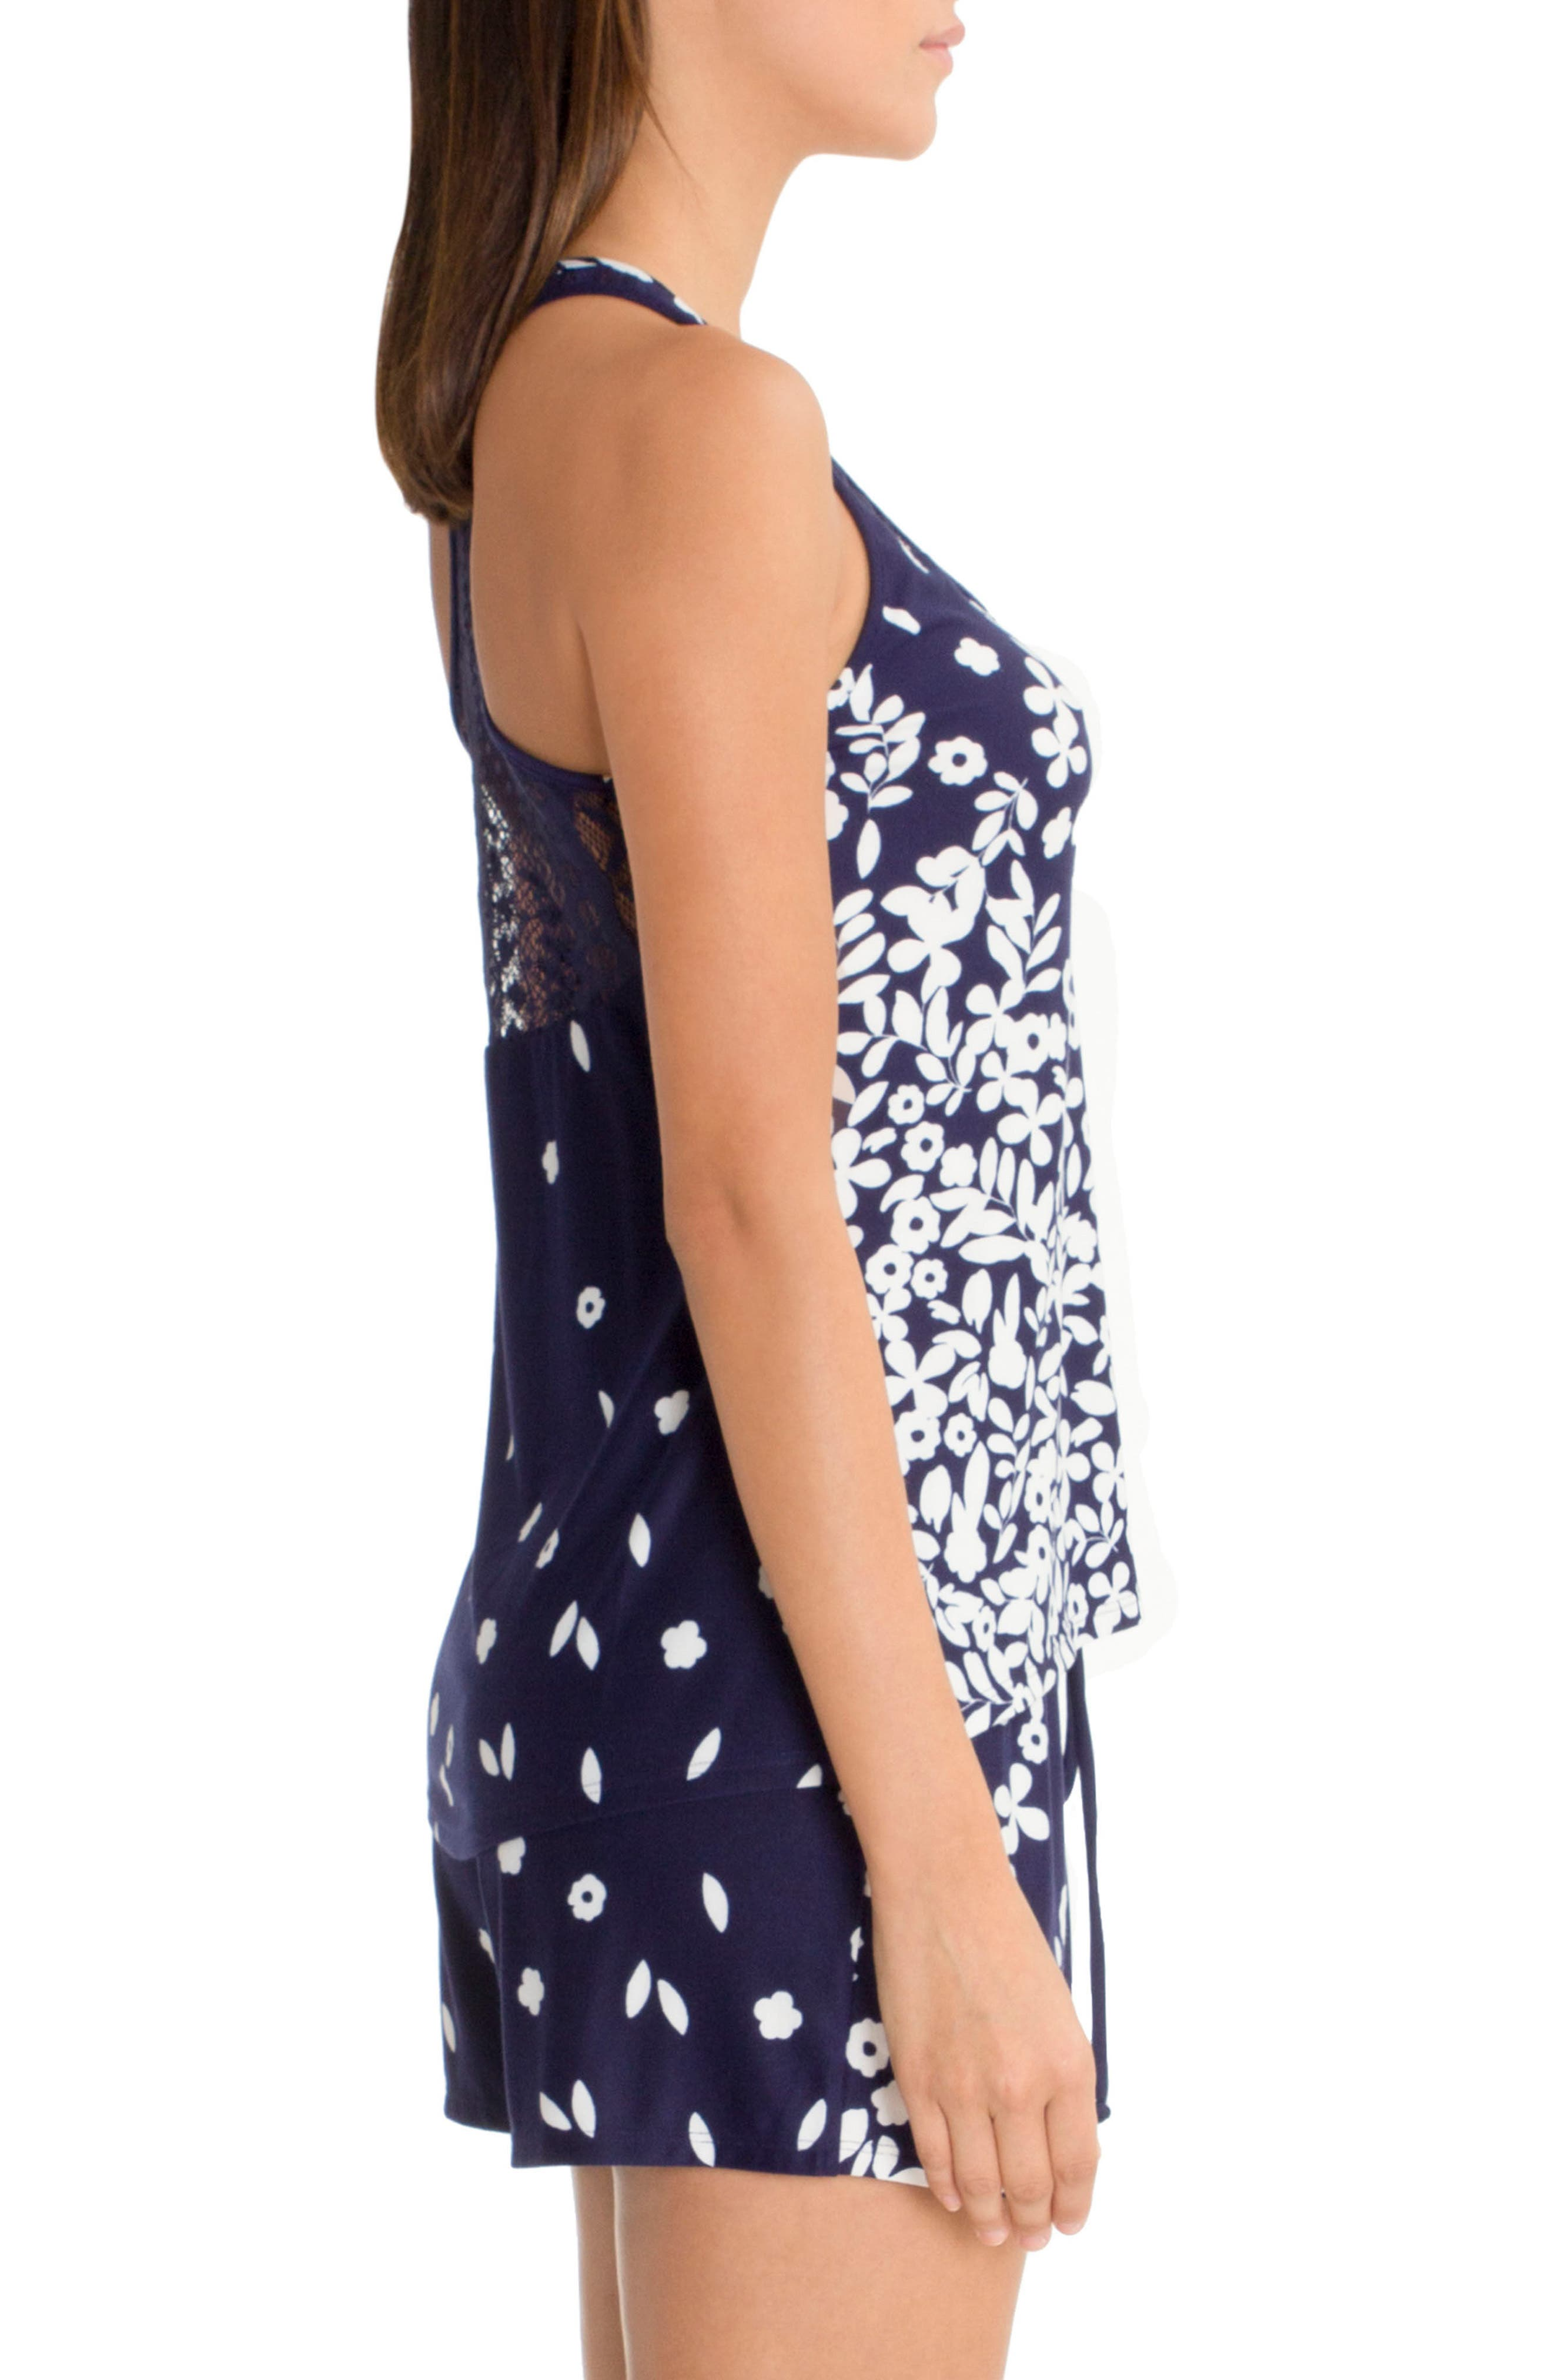 Racerback Camisole,                             Alternate thumbnail 3, color,                             Navy